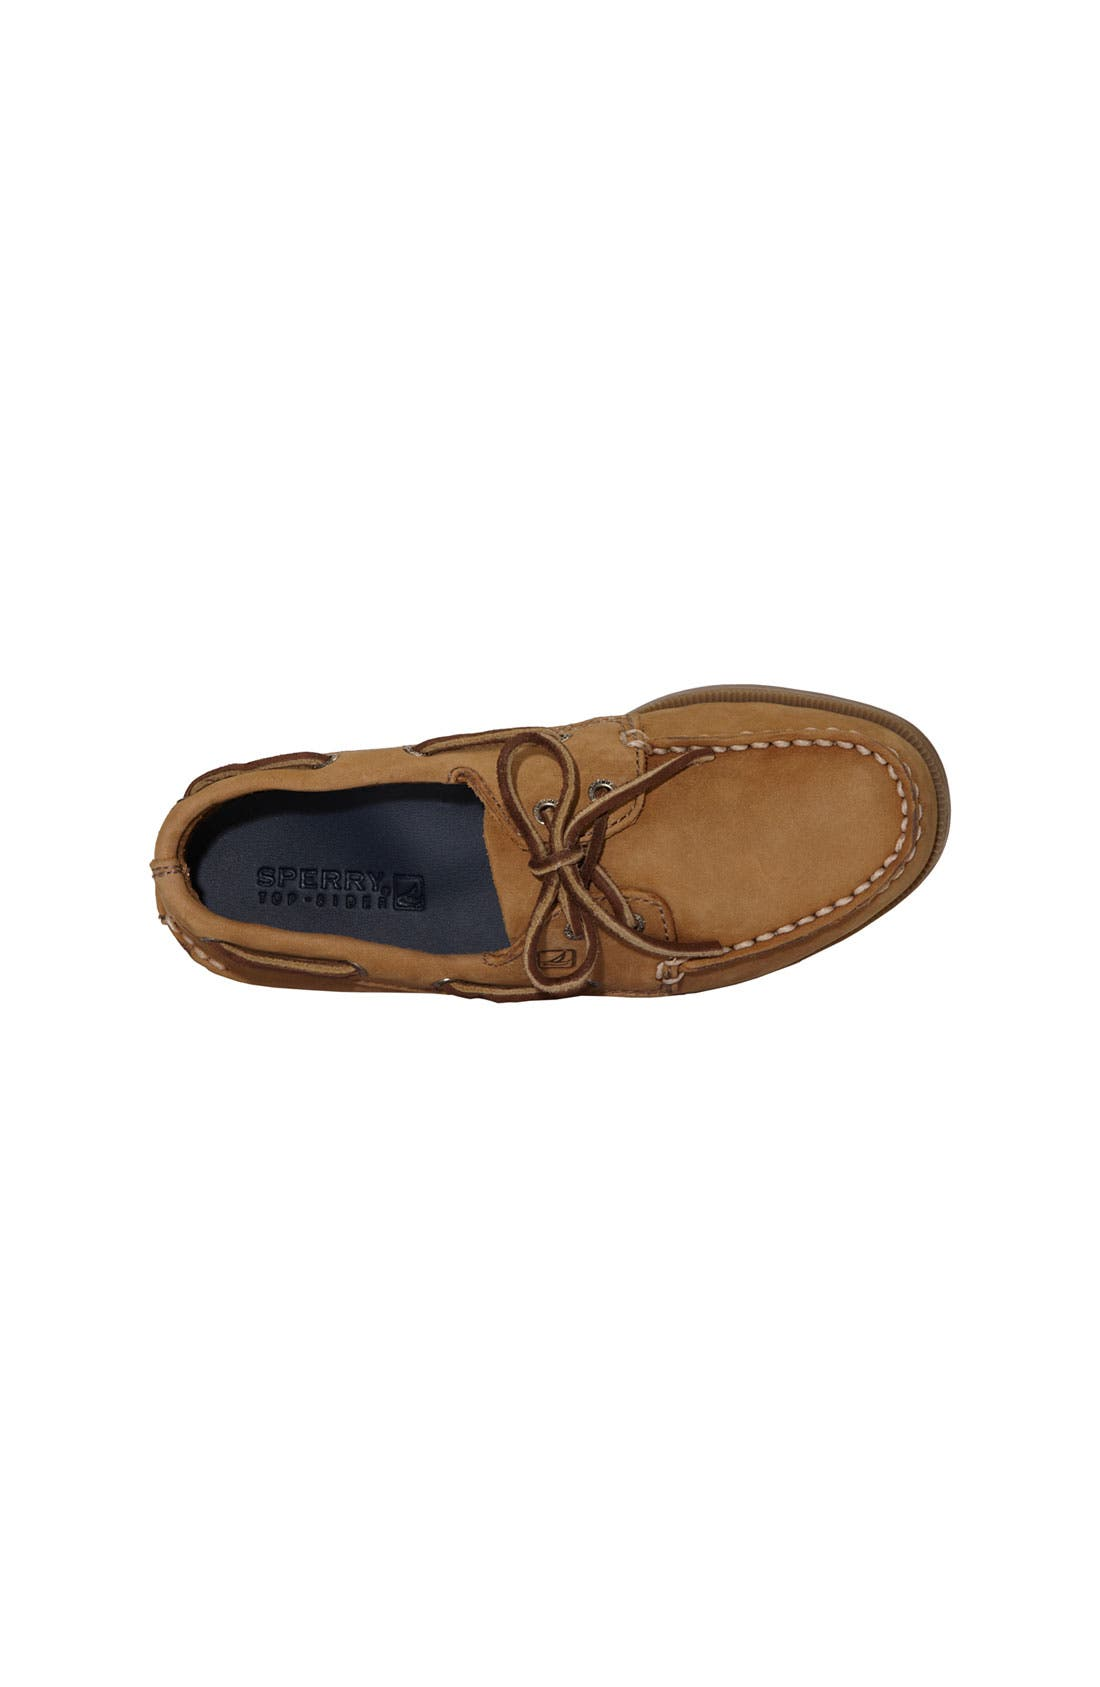 'Authentic Original' Boat Shoe,                             Alternate thumbnail 3, color,                             SAHARA LEATHER